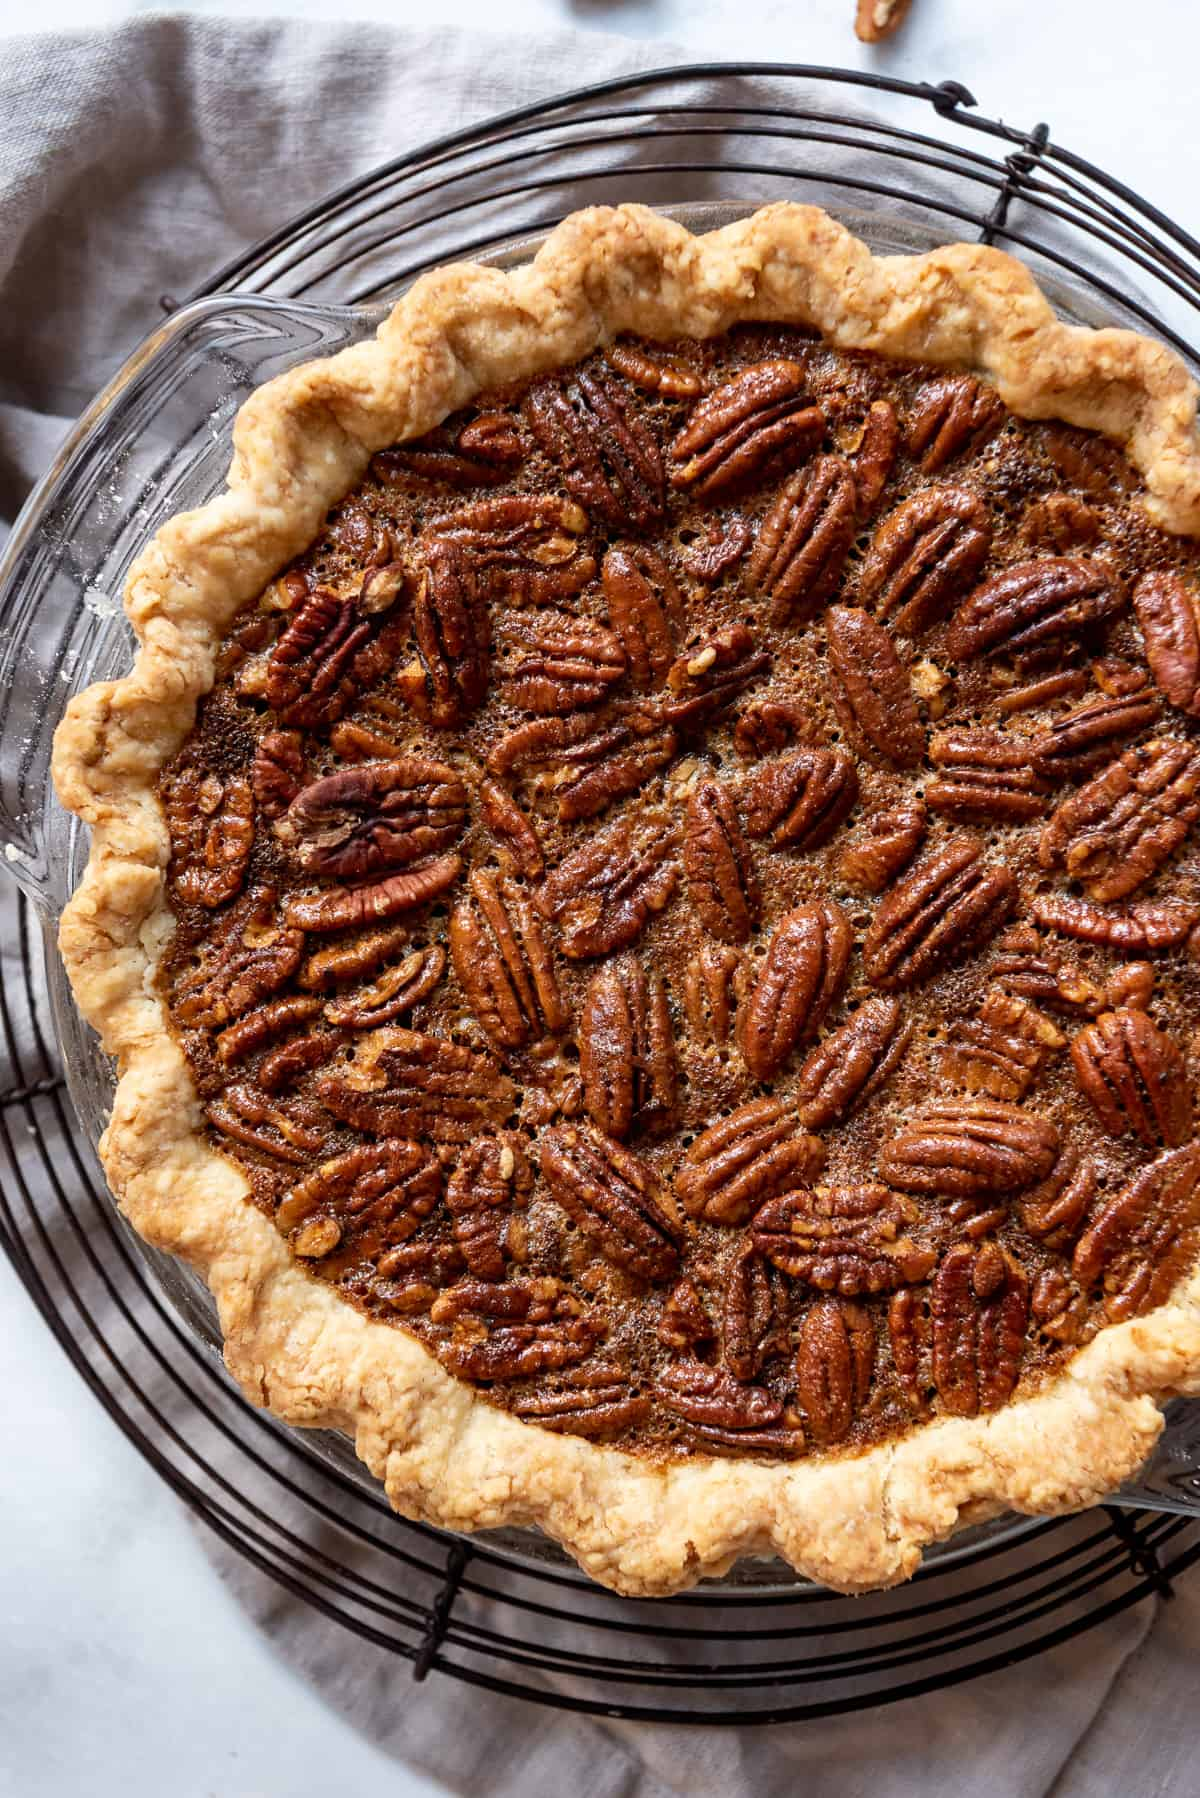 an overhead image of the caramelized top of a homemade pecan pie cooling on a black wire rack.